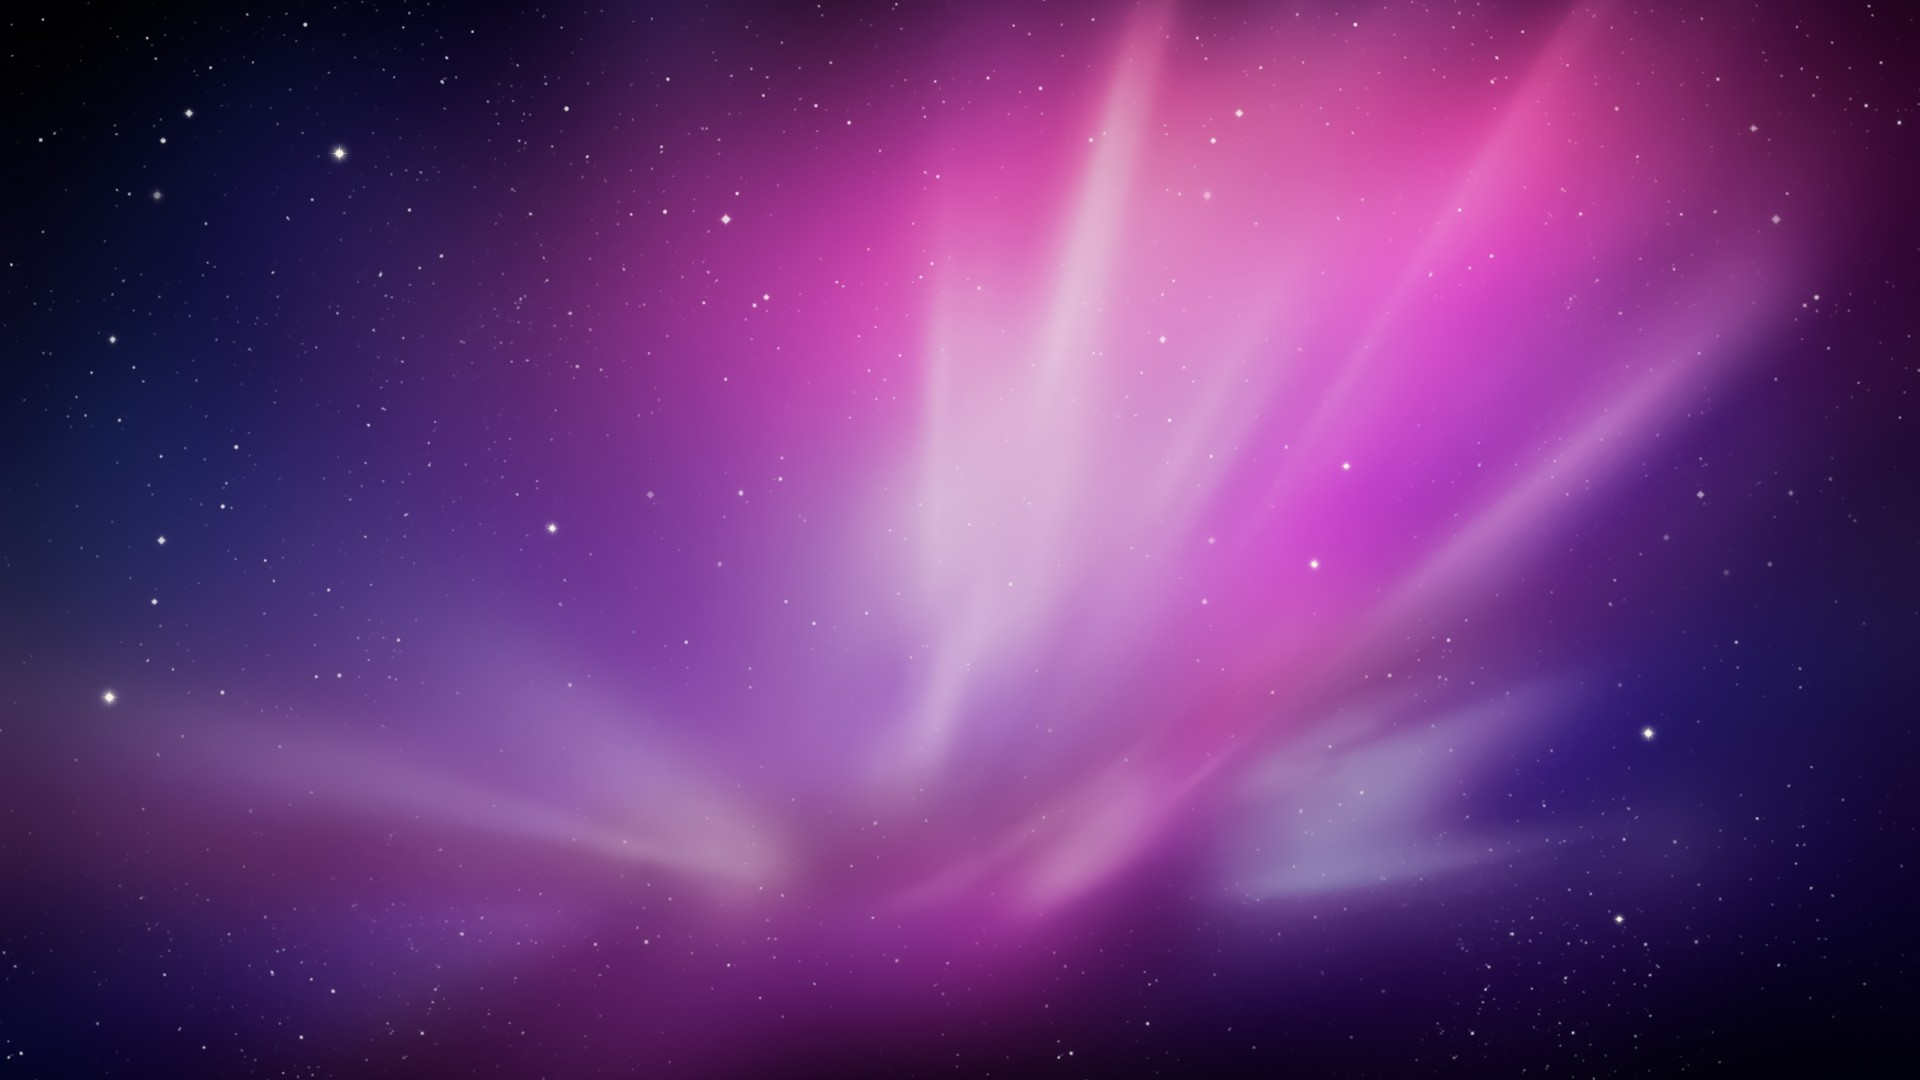 Animated 3d Wallpapers For Desktop Windows 7 Os X Snow Leopard Stock 5k Wallpapers Hd Wallpapers Id